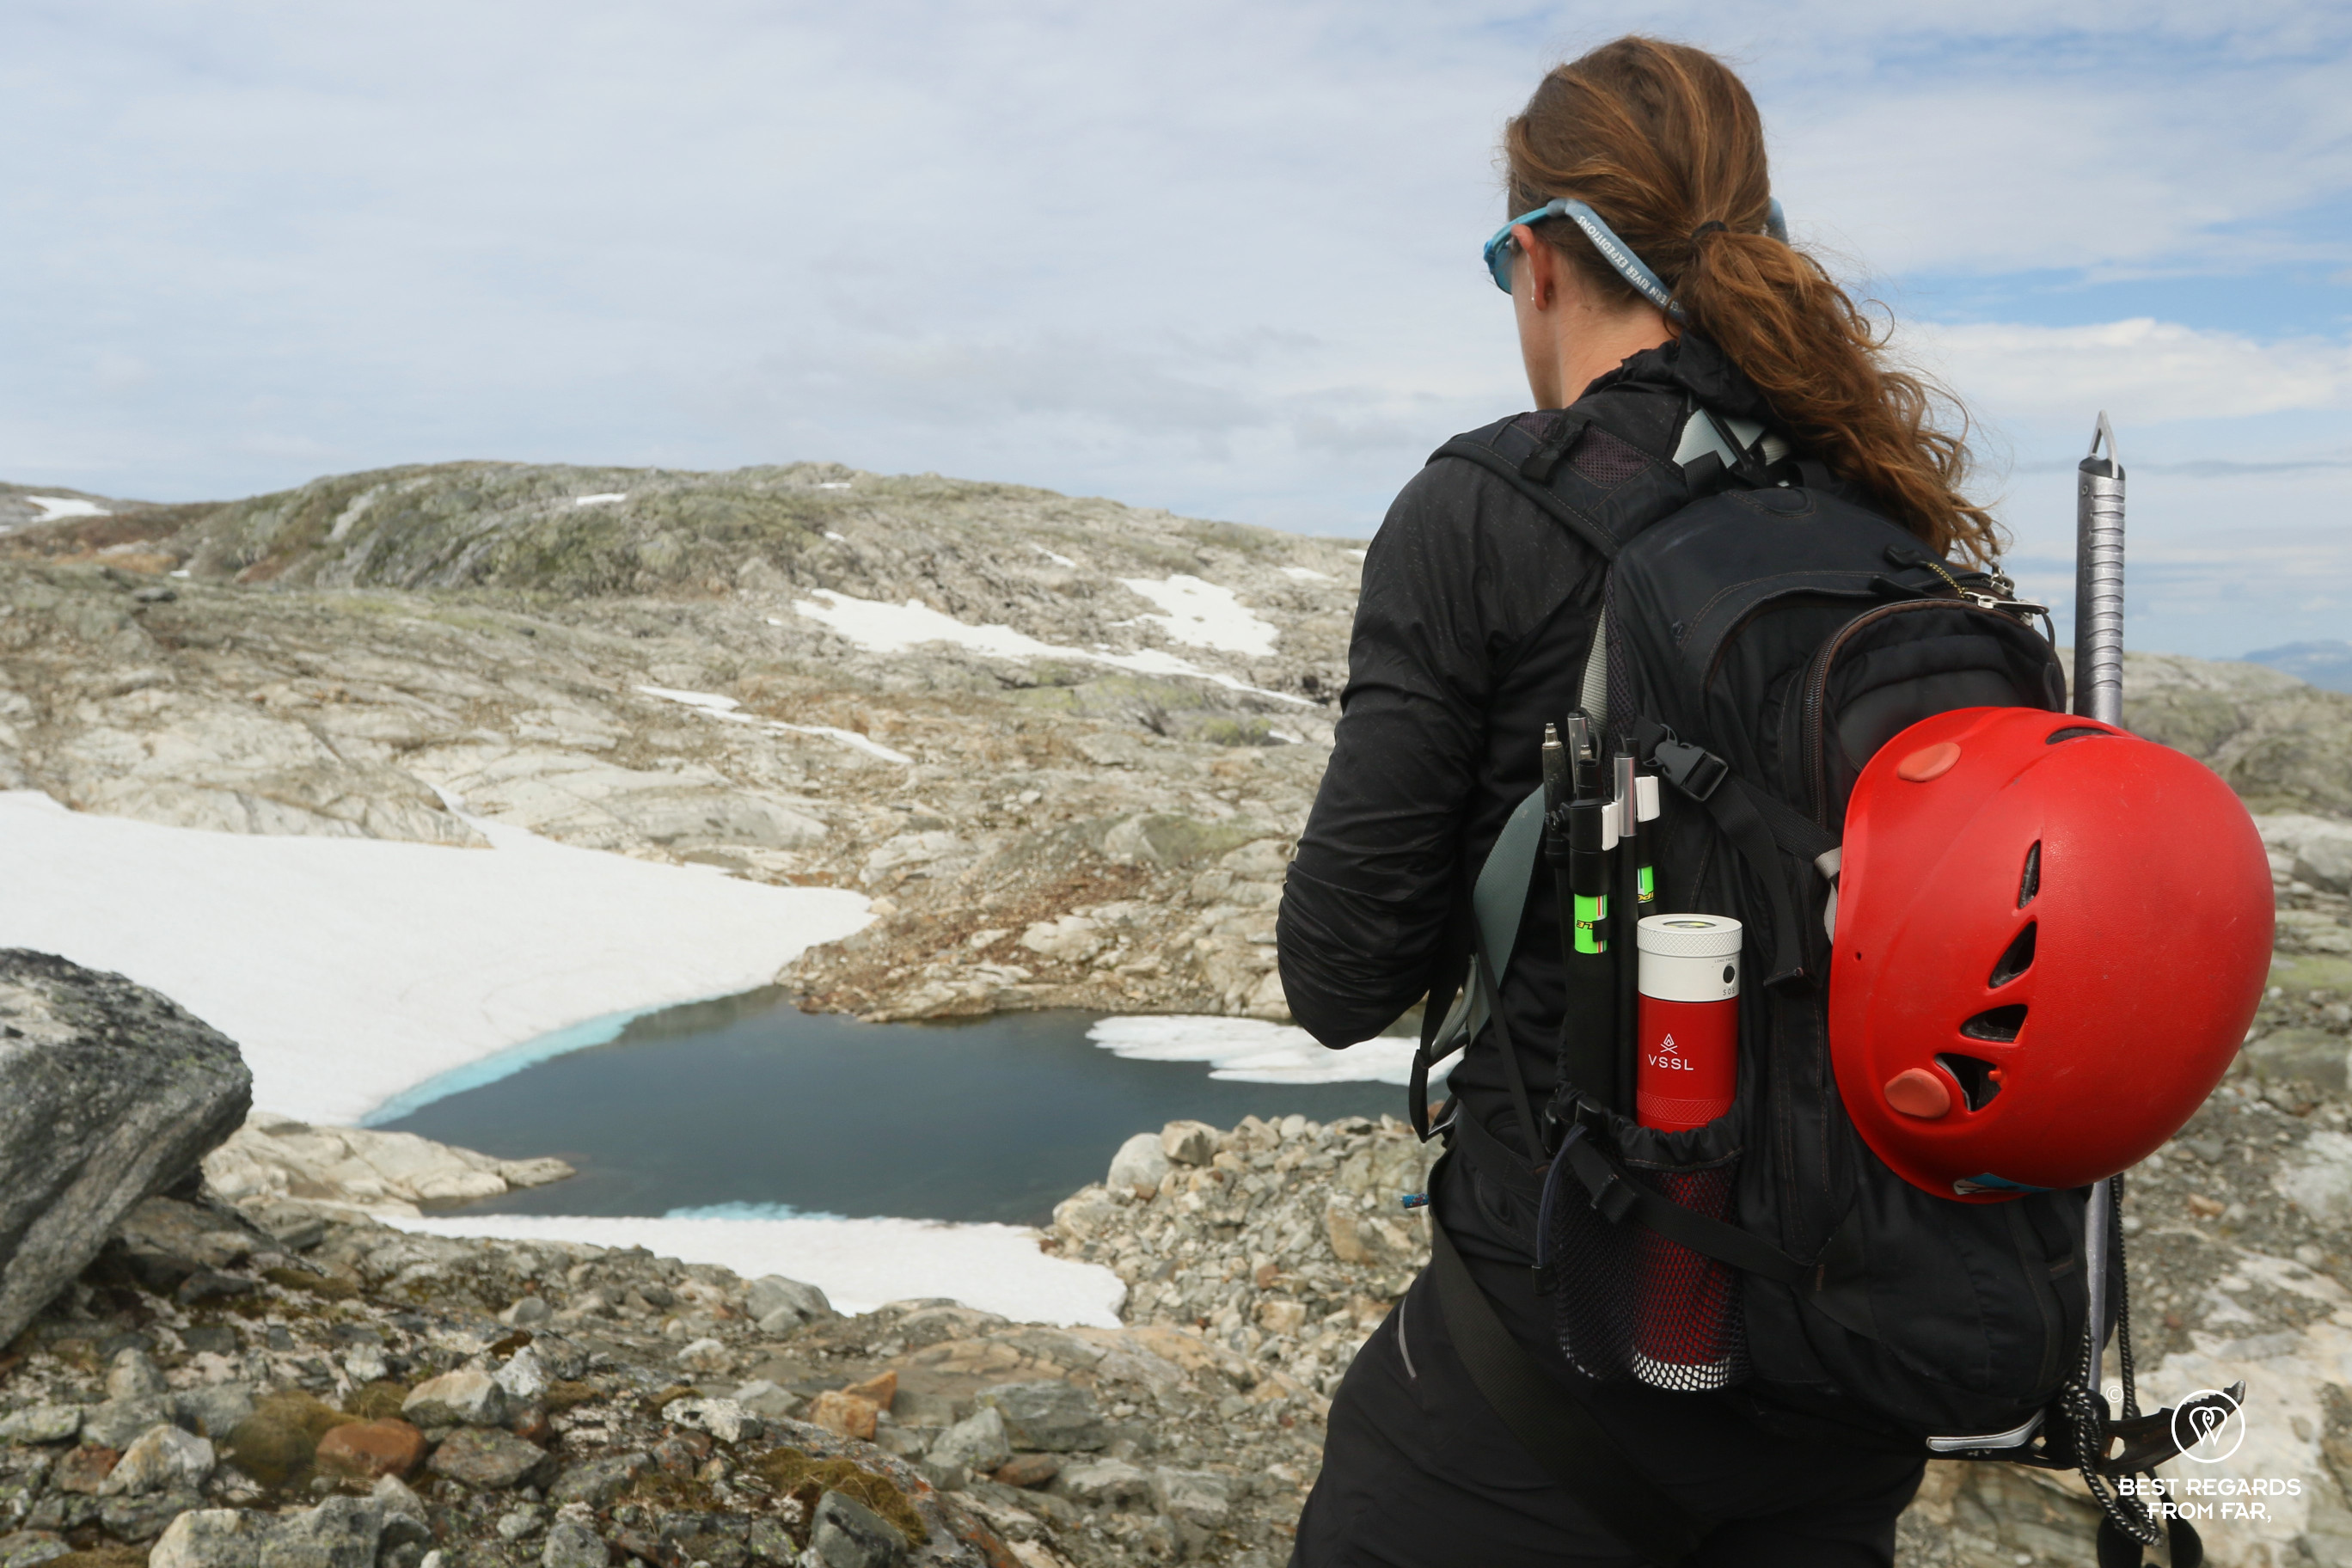 Author Marcella van Alphen taking in the landscape by the Fonna Glacier